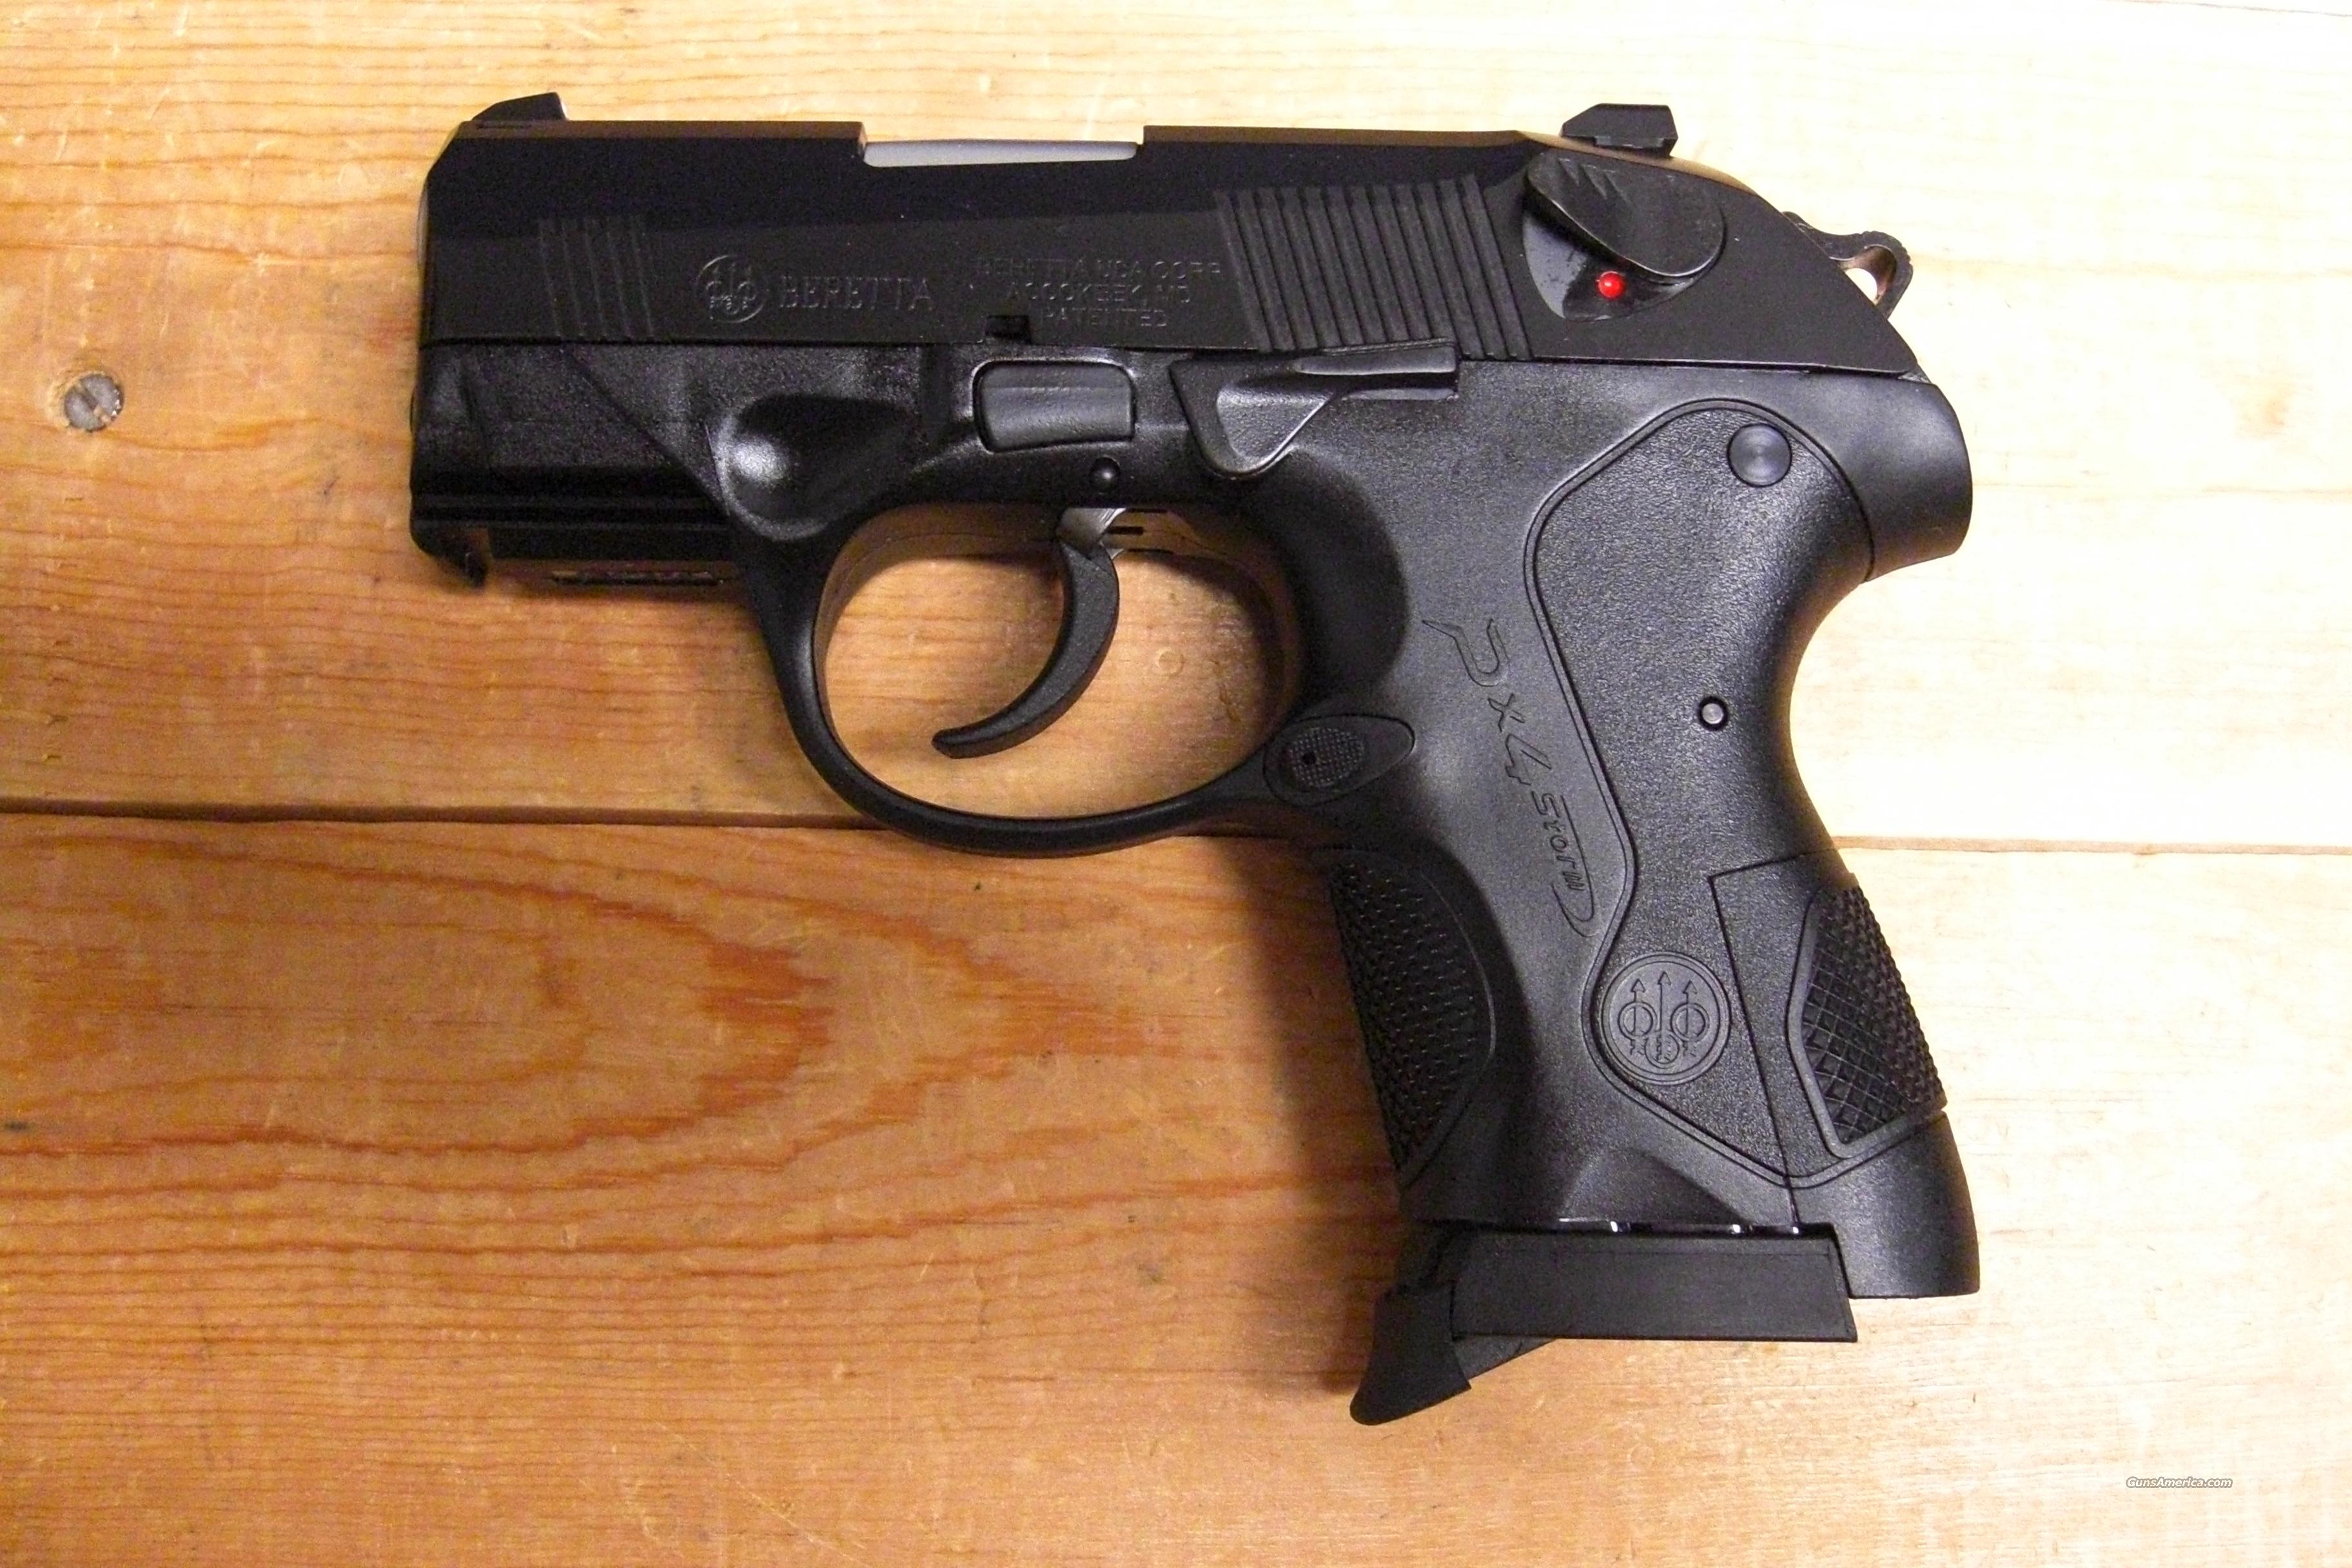 Px4 Storm Sub Compact  w/3  13 rd. mags.  Guns > Pistols > Beretta Pistols > Polymer Frame